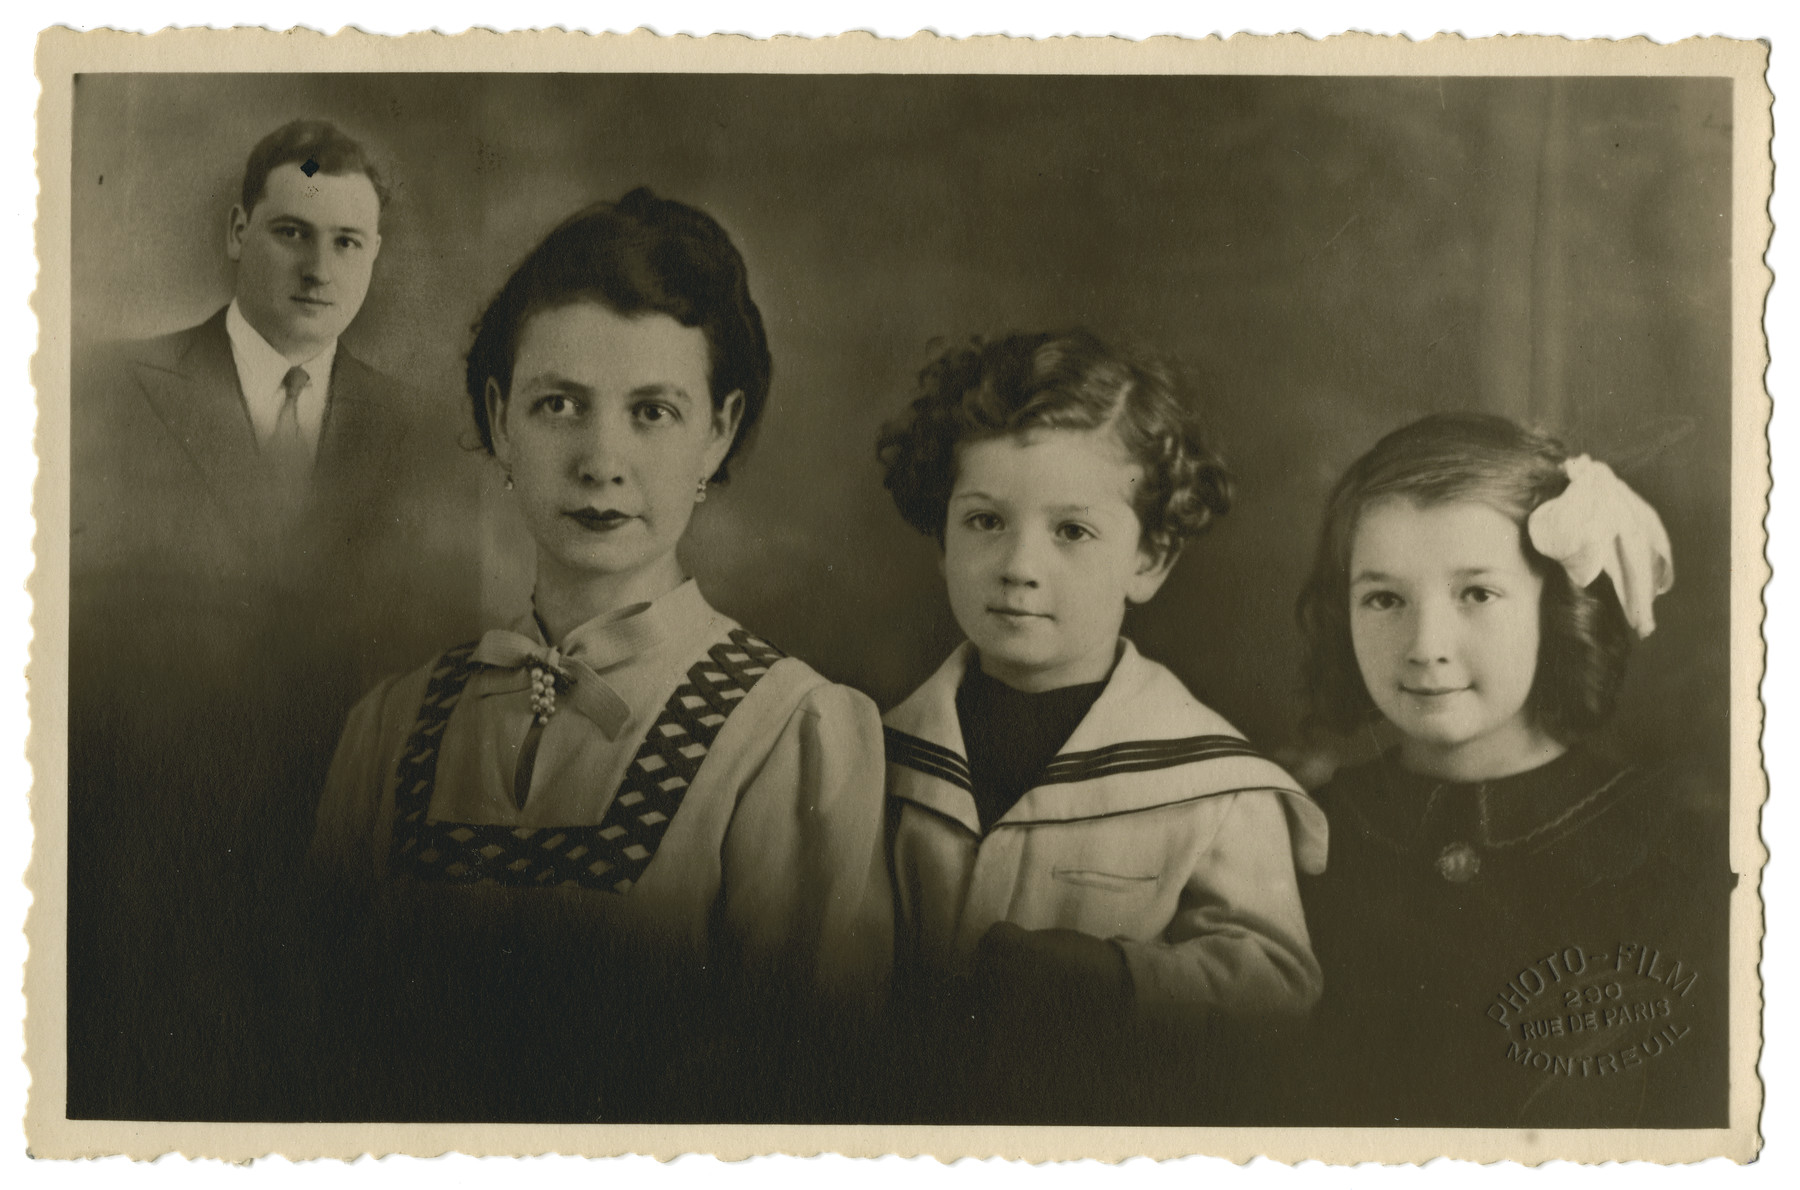 Studio portrait of the Zonendlich family; with the father who was already deported superimposed in the corner.  From left to right are Szmuel, Nacha, Joseph and Lucie Zonendlich.